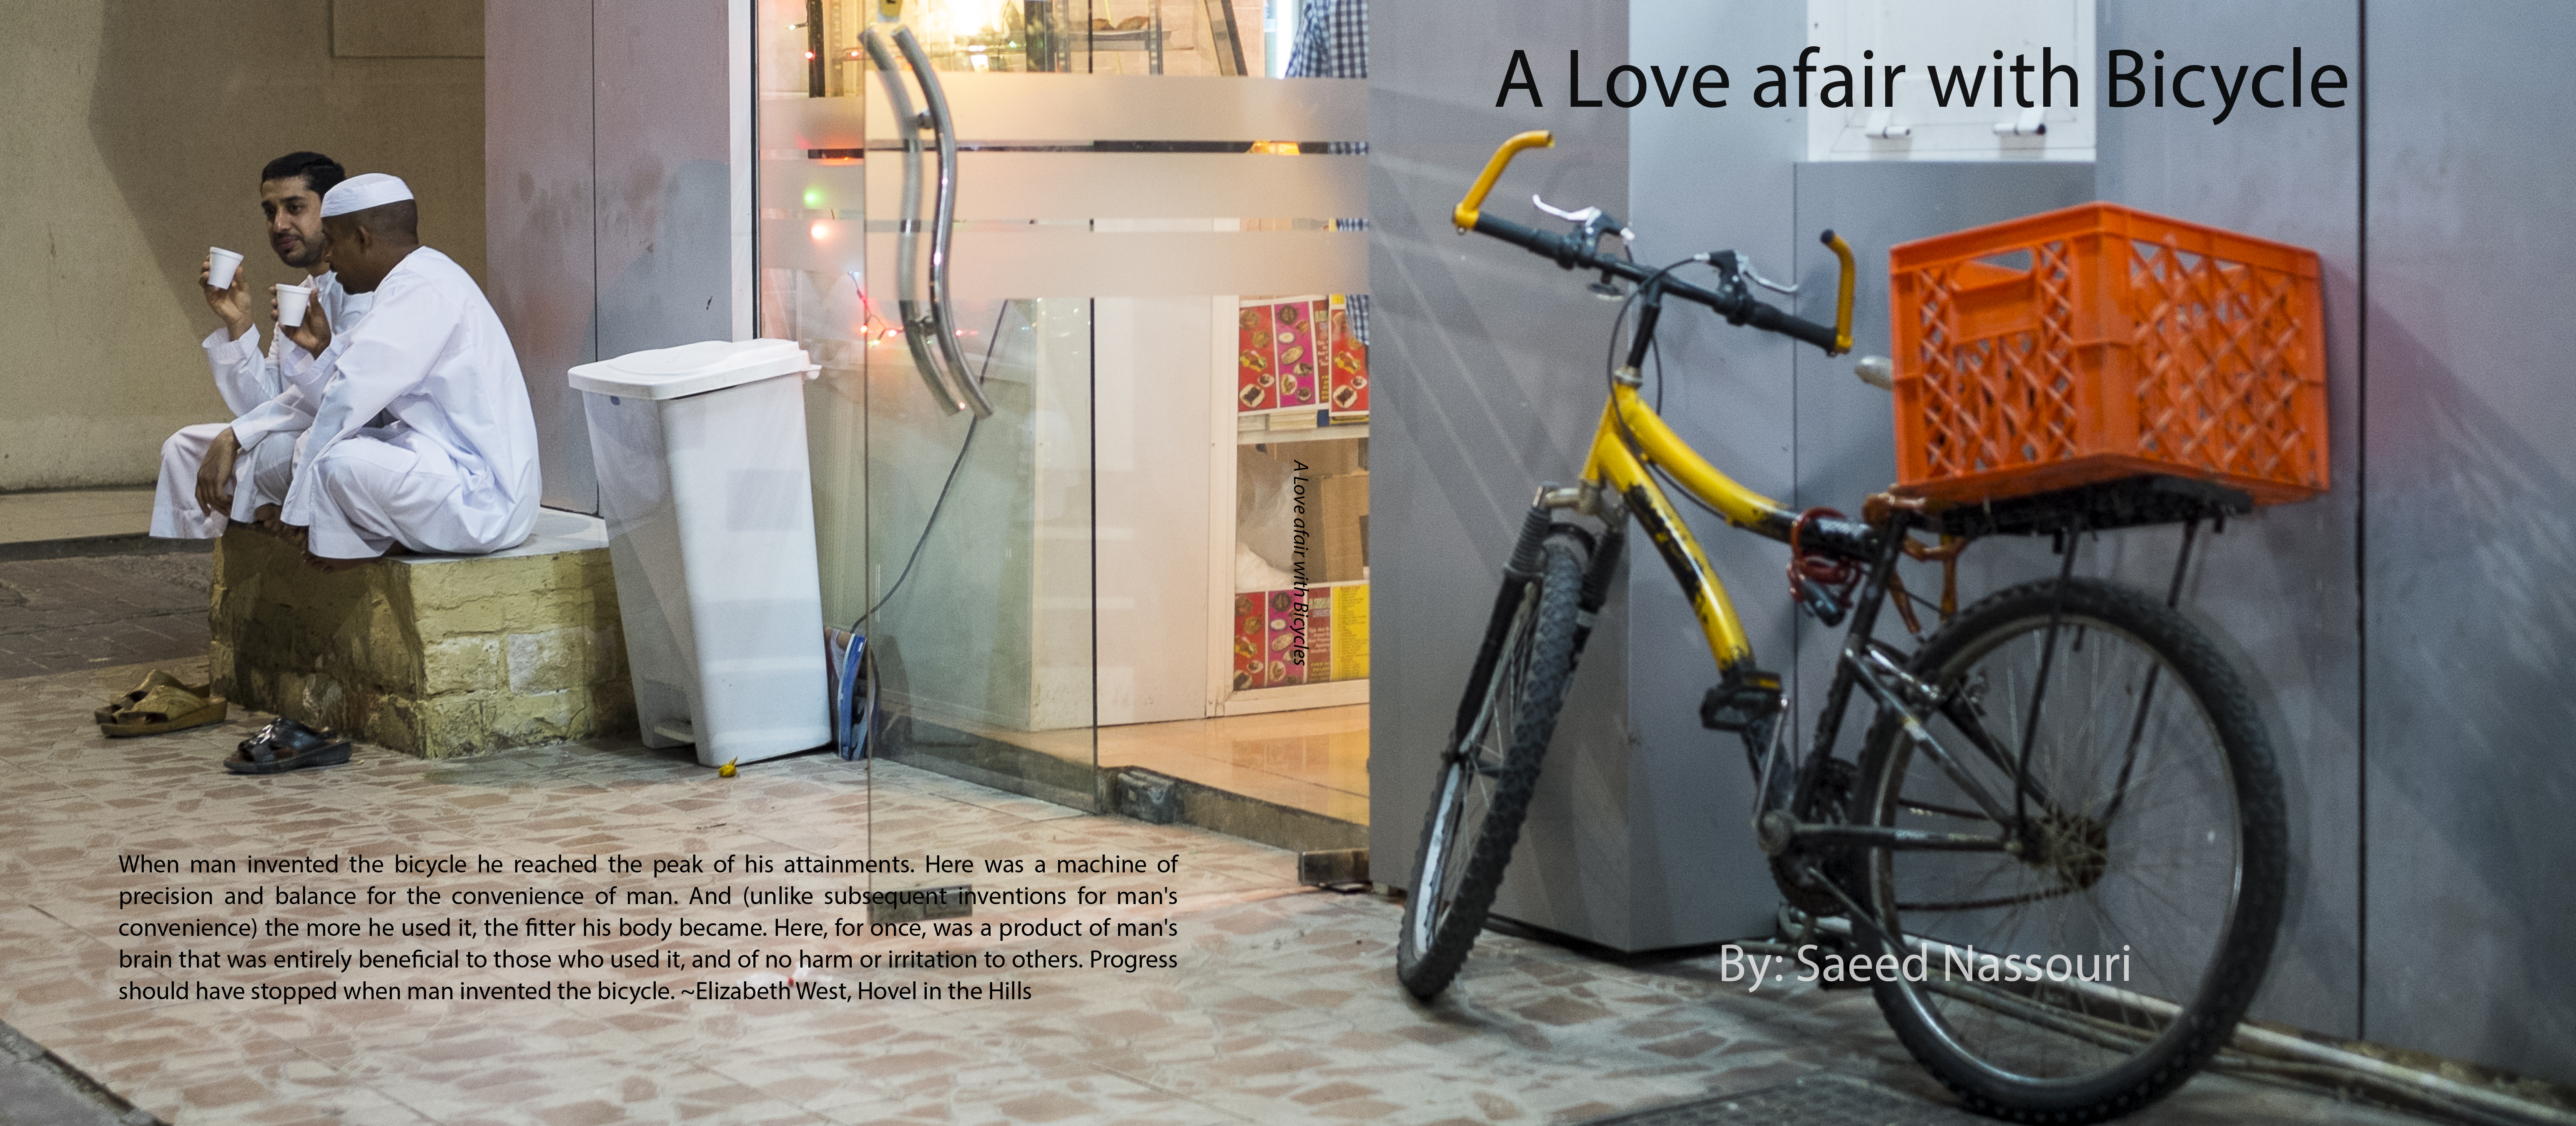 A Love afair with Bicycle Cover.jpg